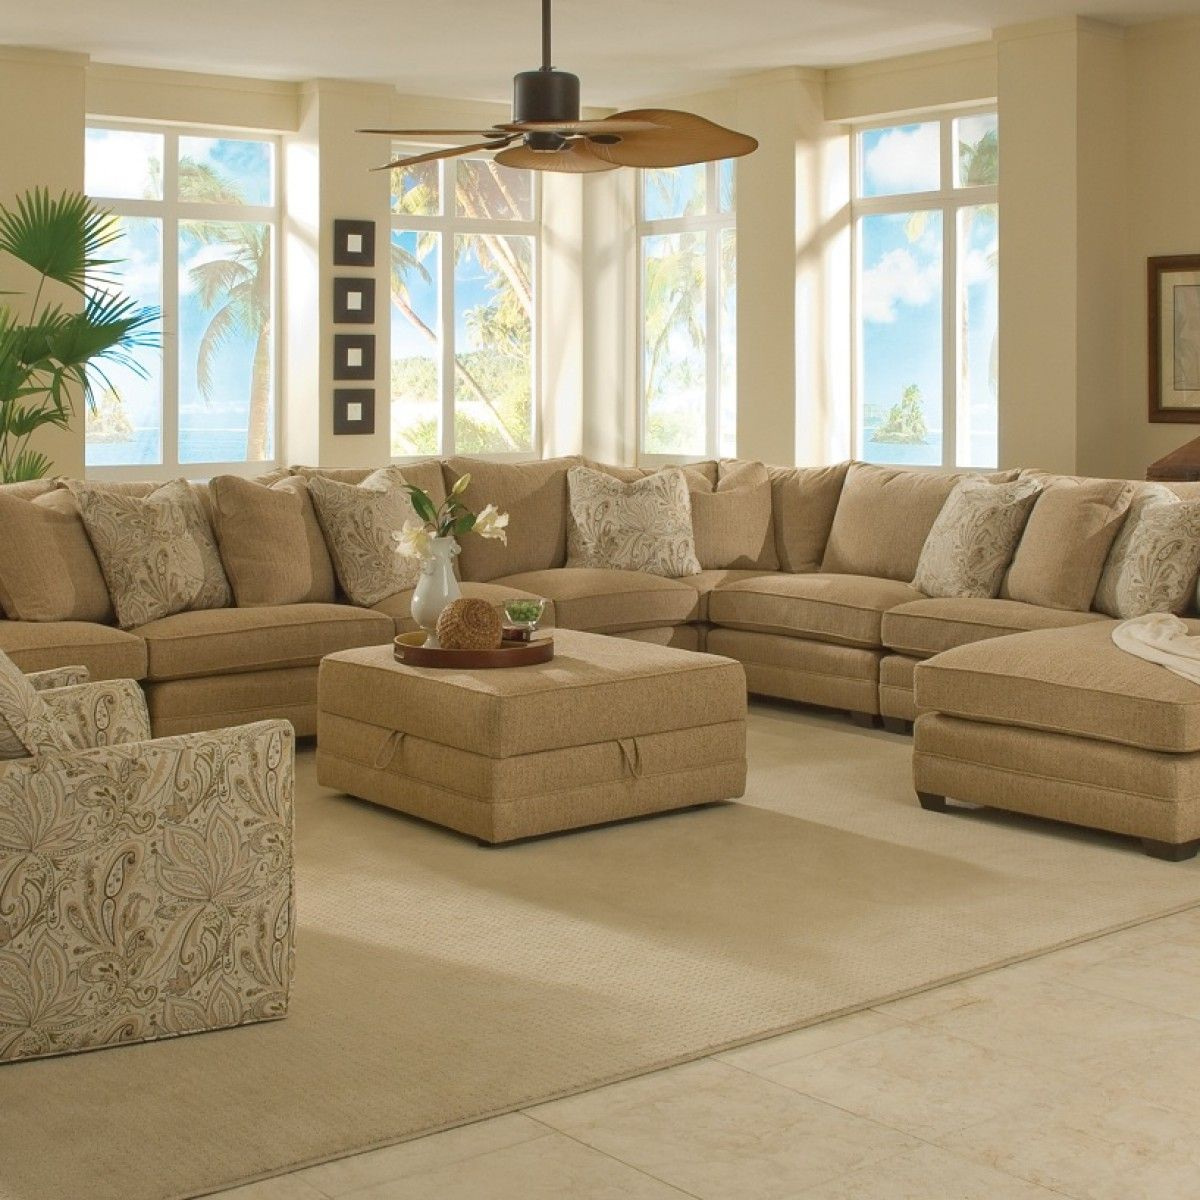 Magnificent large sectional sofas family room - Large pictures for living room ...